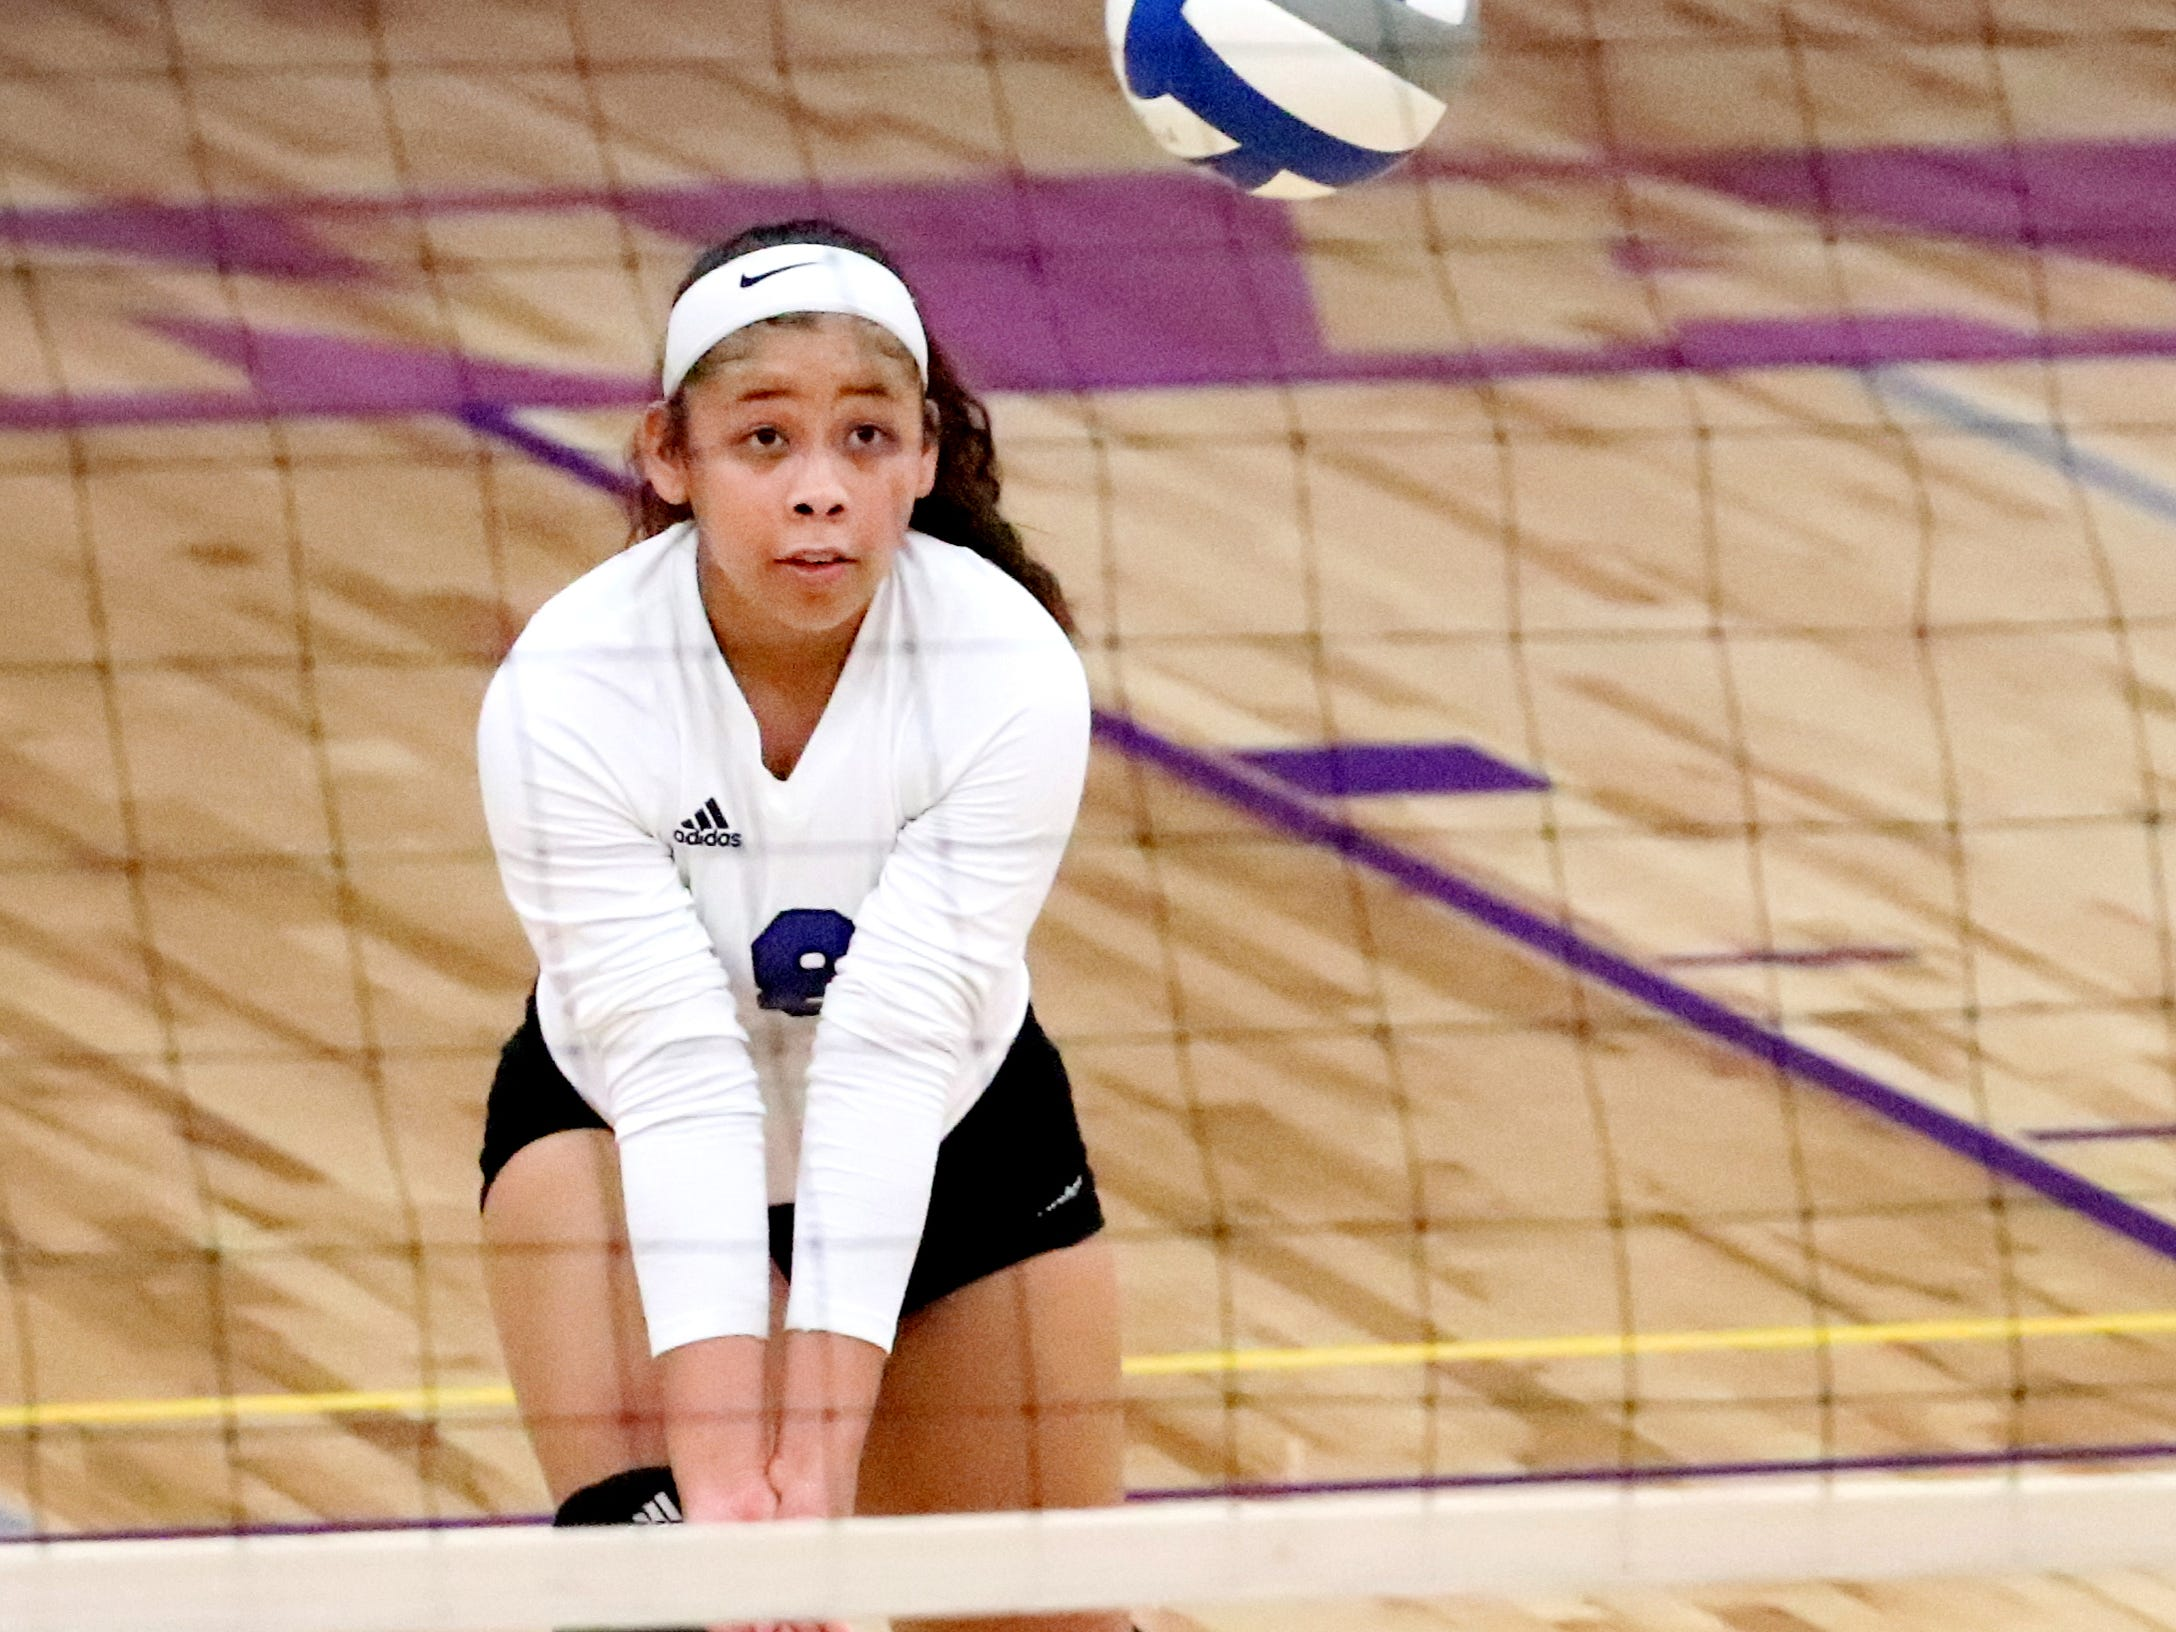 La Vergne's Lena Braun (8) bumps the ball against Smyrna at Smyrna, on Tuesday, Aug. 25 2018. Smyrna wins the match with a 3 game sweep.